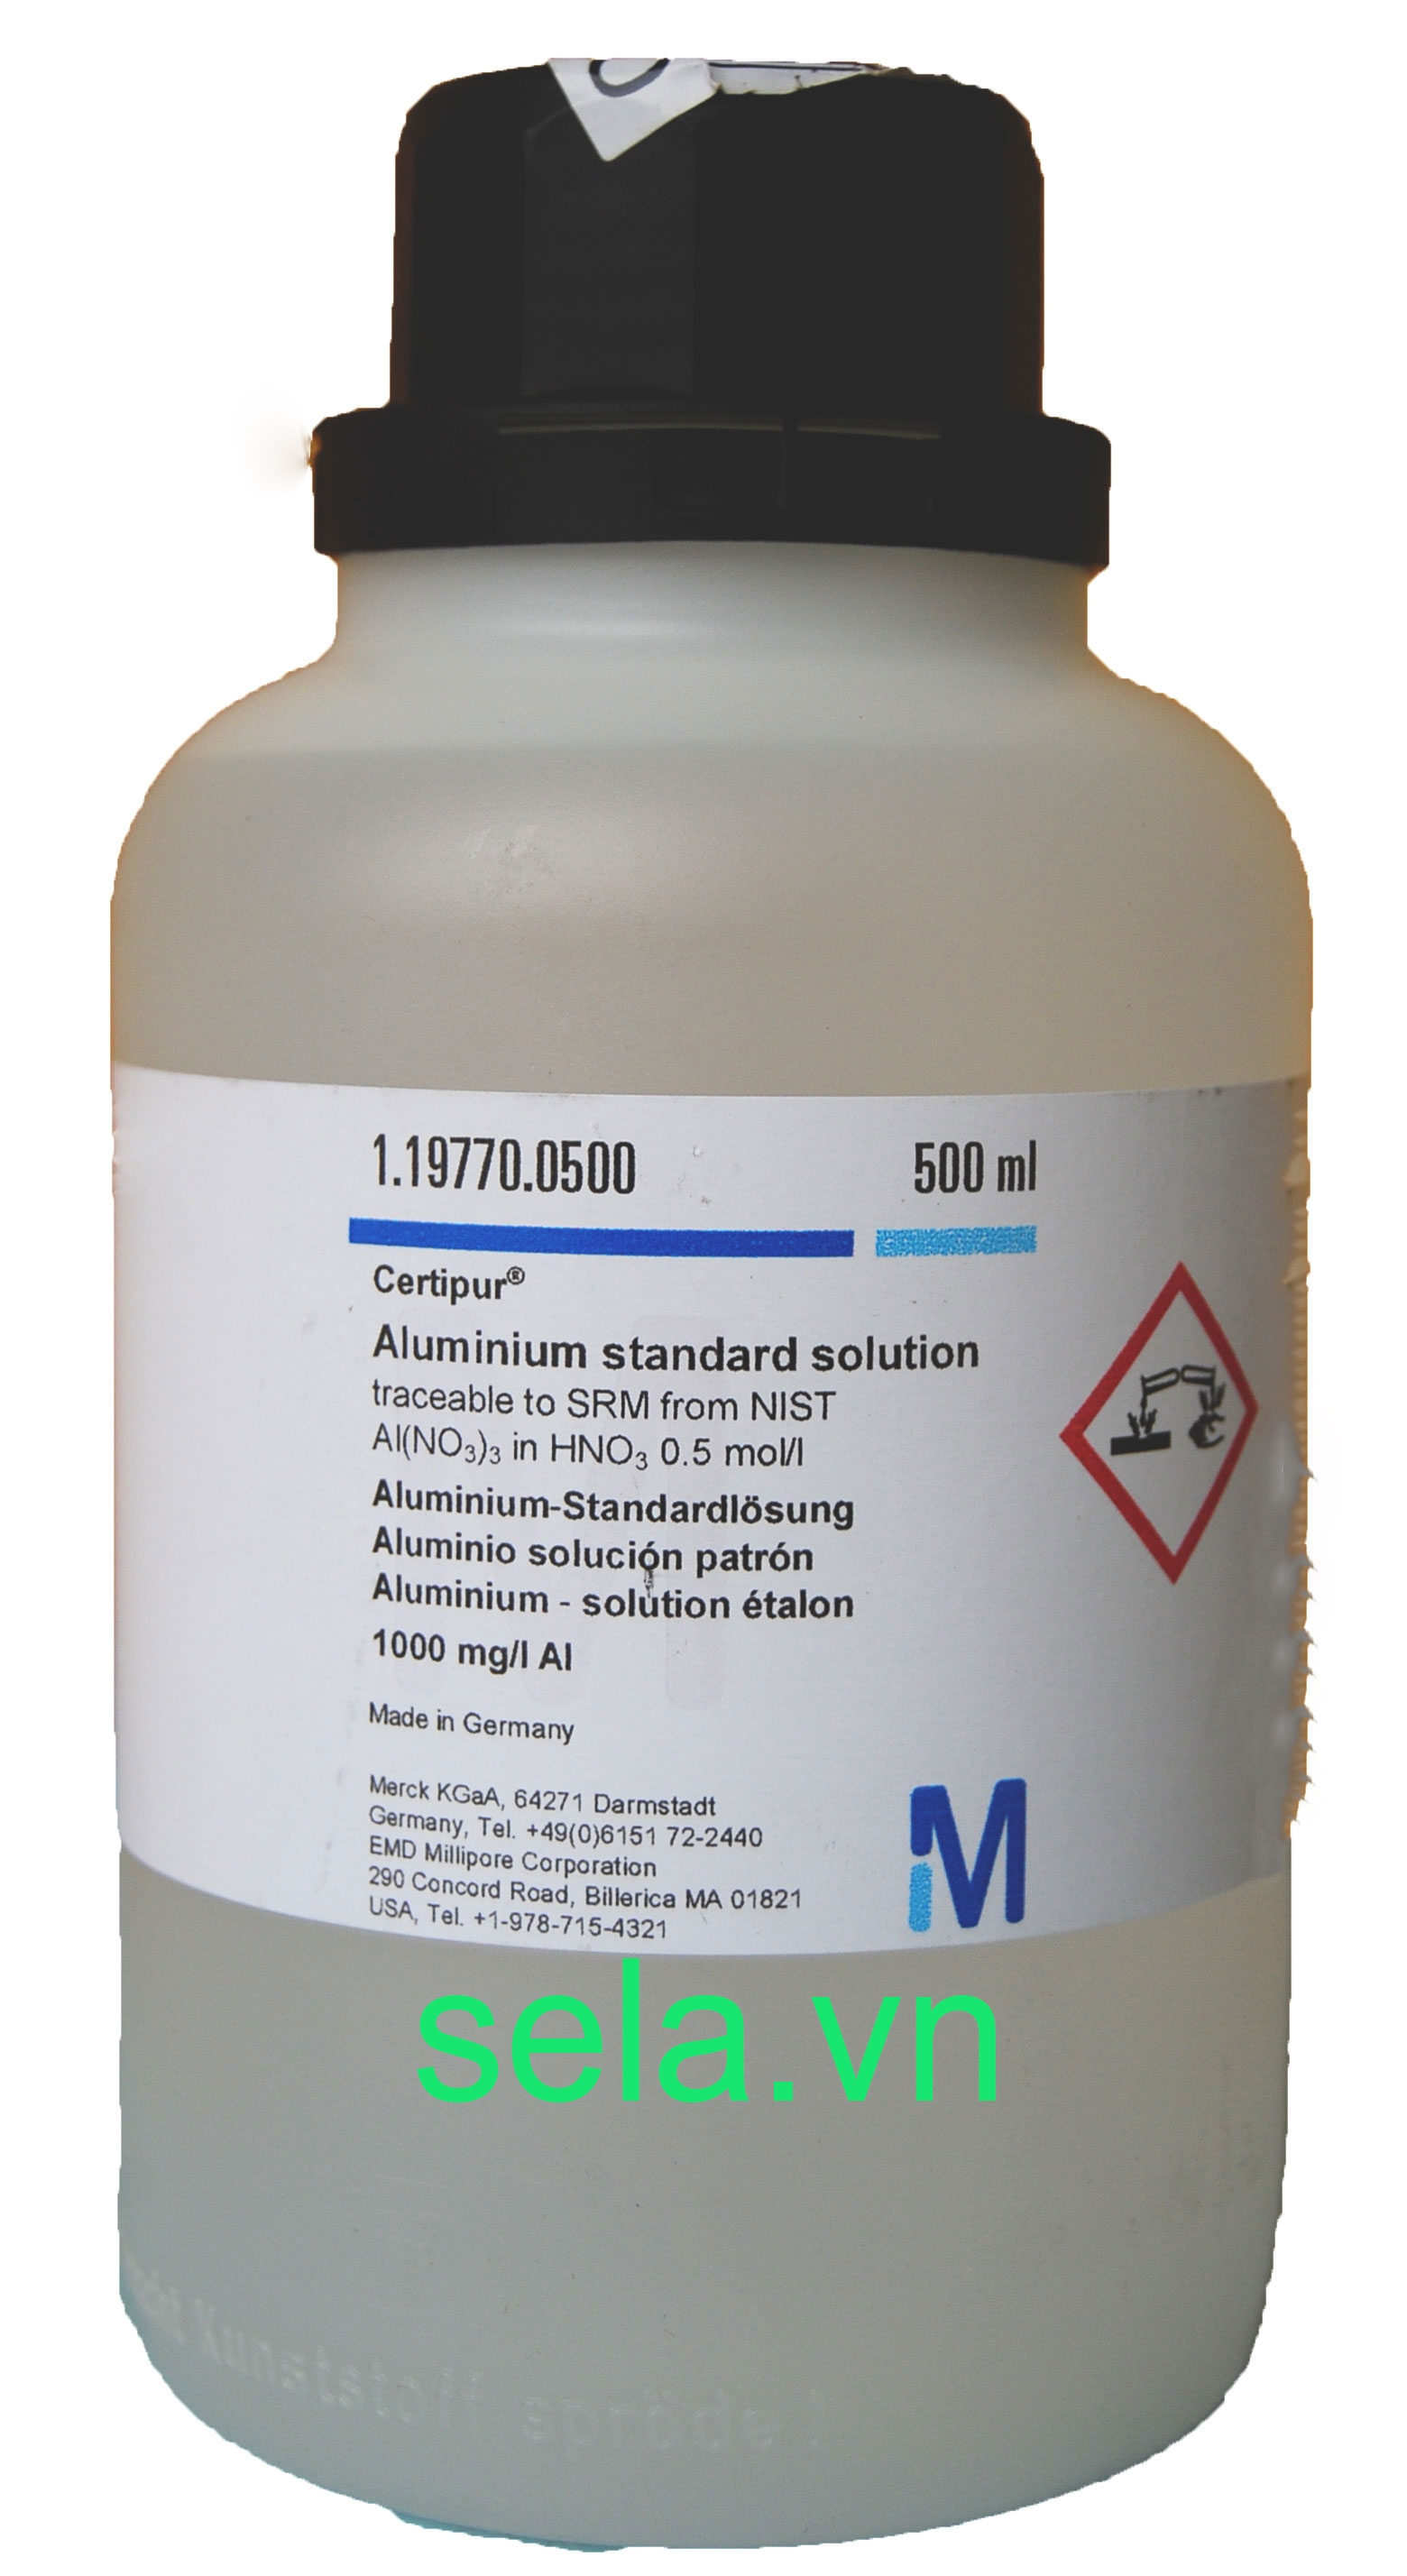 Aluminium standard solution traceable to SRM from NIST Al(NO₃)₃ in HNO₃ 0.5 mol/l 1000 mg/l Al Certipur®